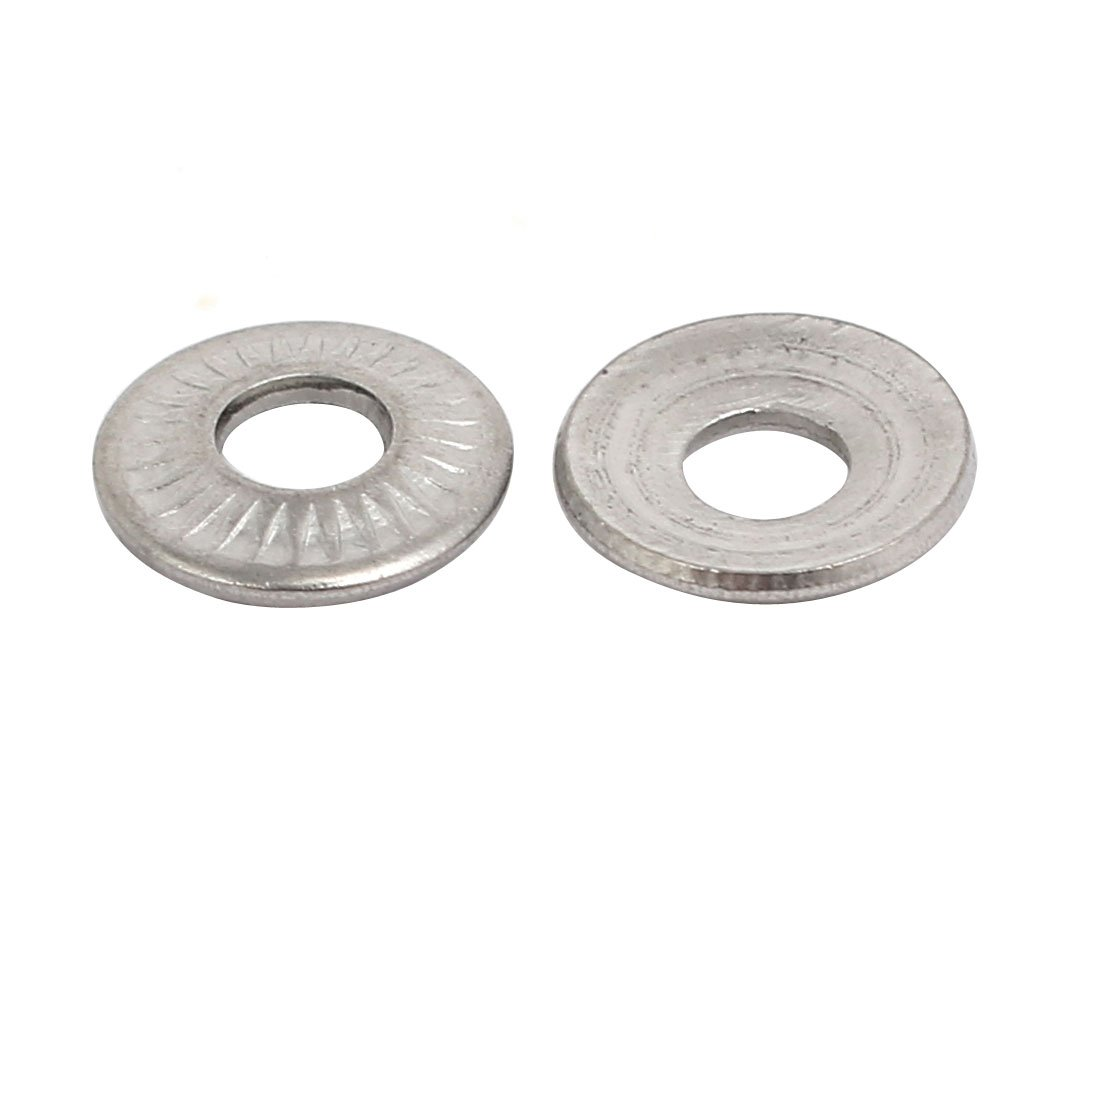 uxcell M3 Inner Diameter 304 Stainless Steel Serrated Conical Spring Washer 20pcs